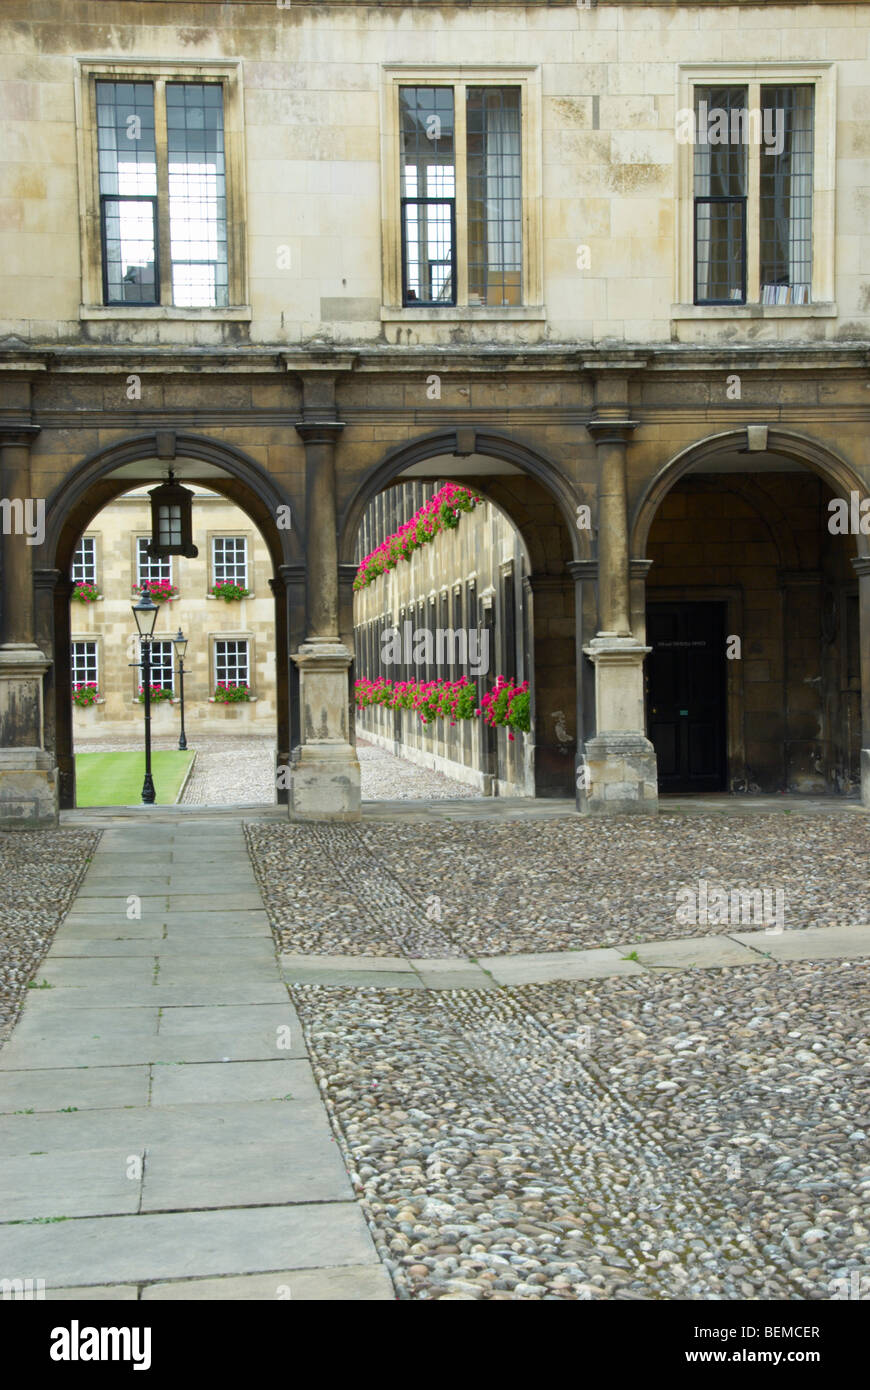 Peterhouse College, Cambridge - Stock Image